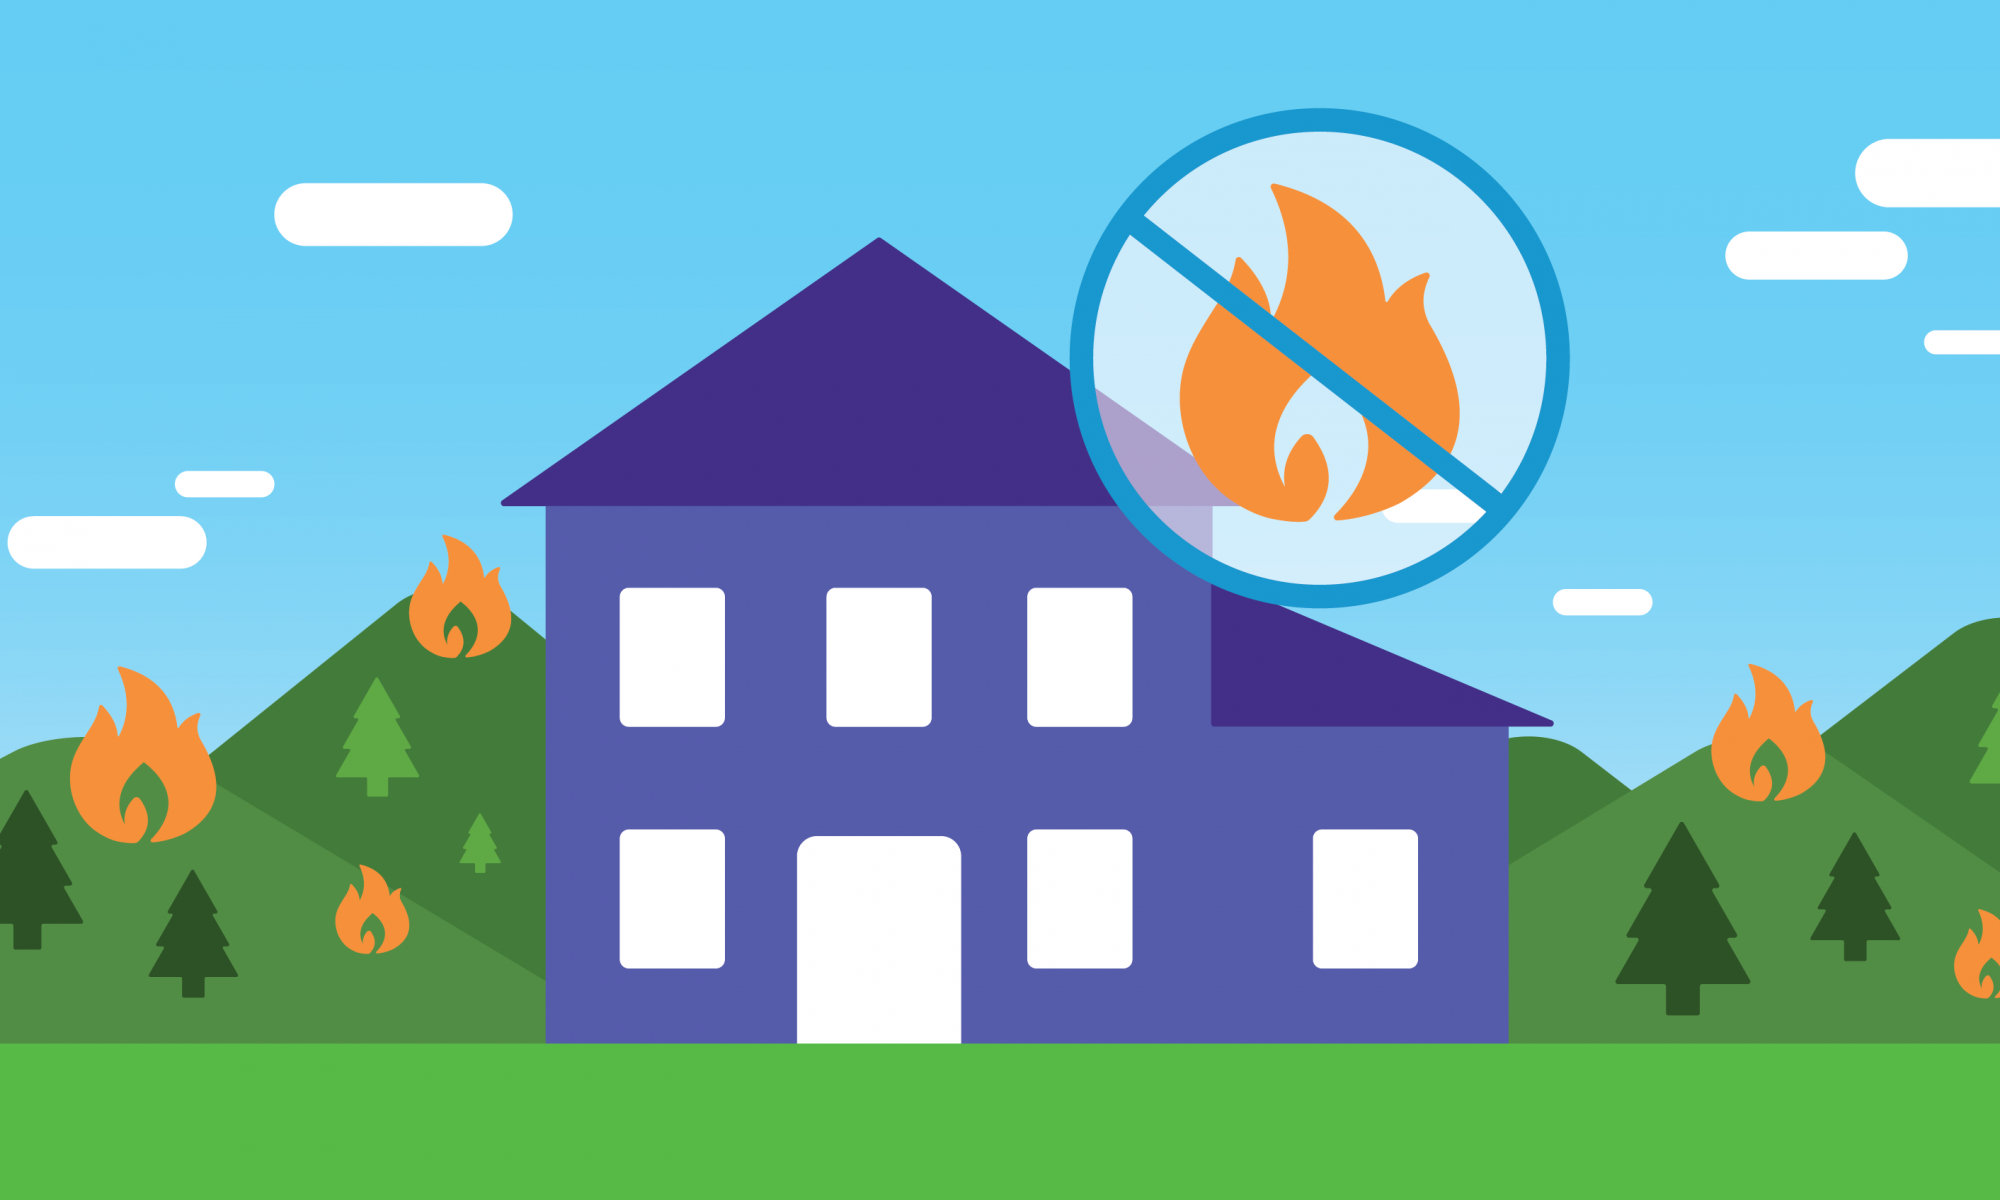 Graphic of a purple house with small flames around it